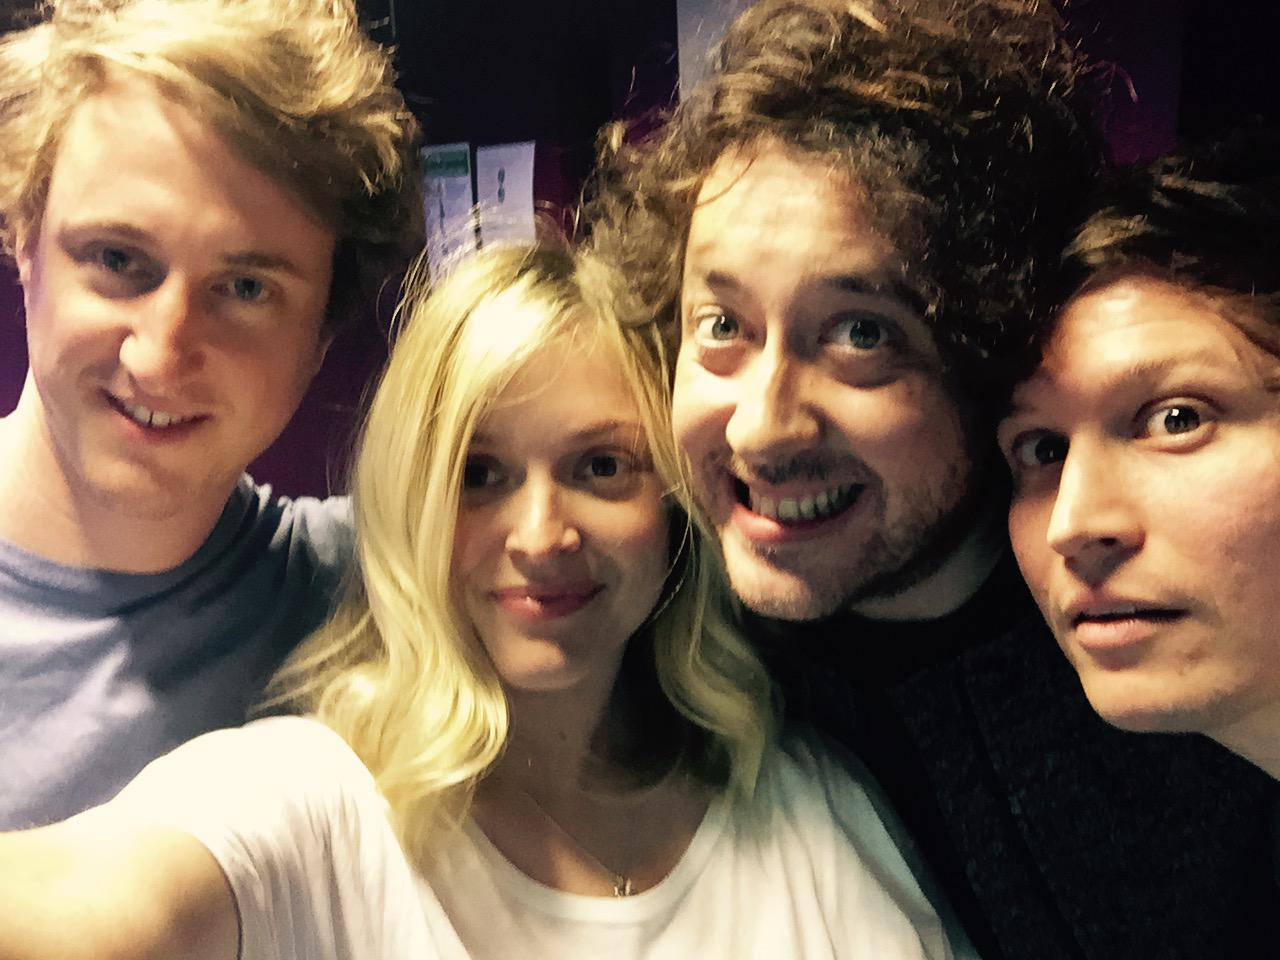 The ever smiley Wombats on my show today #R1Wombats http://t.co/VApPQyQoiO